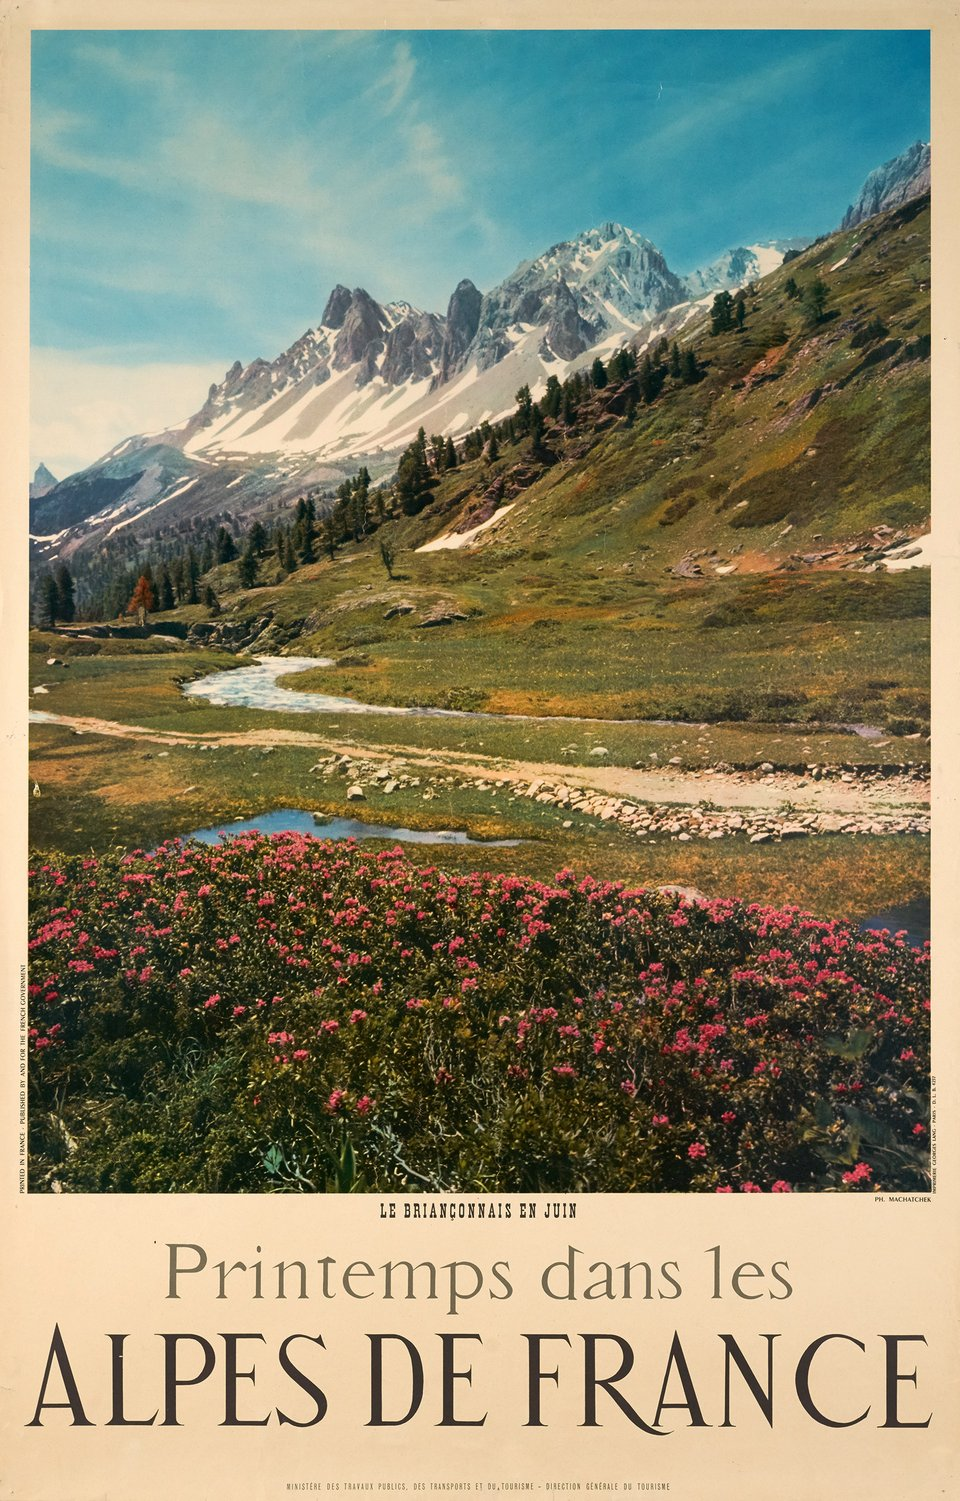 Le Briançonnais, Alpes de France – Affiche ancienne – Karl (photo) MACHATCHEK – 1950